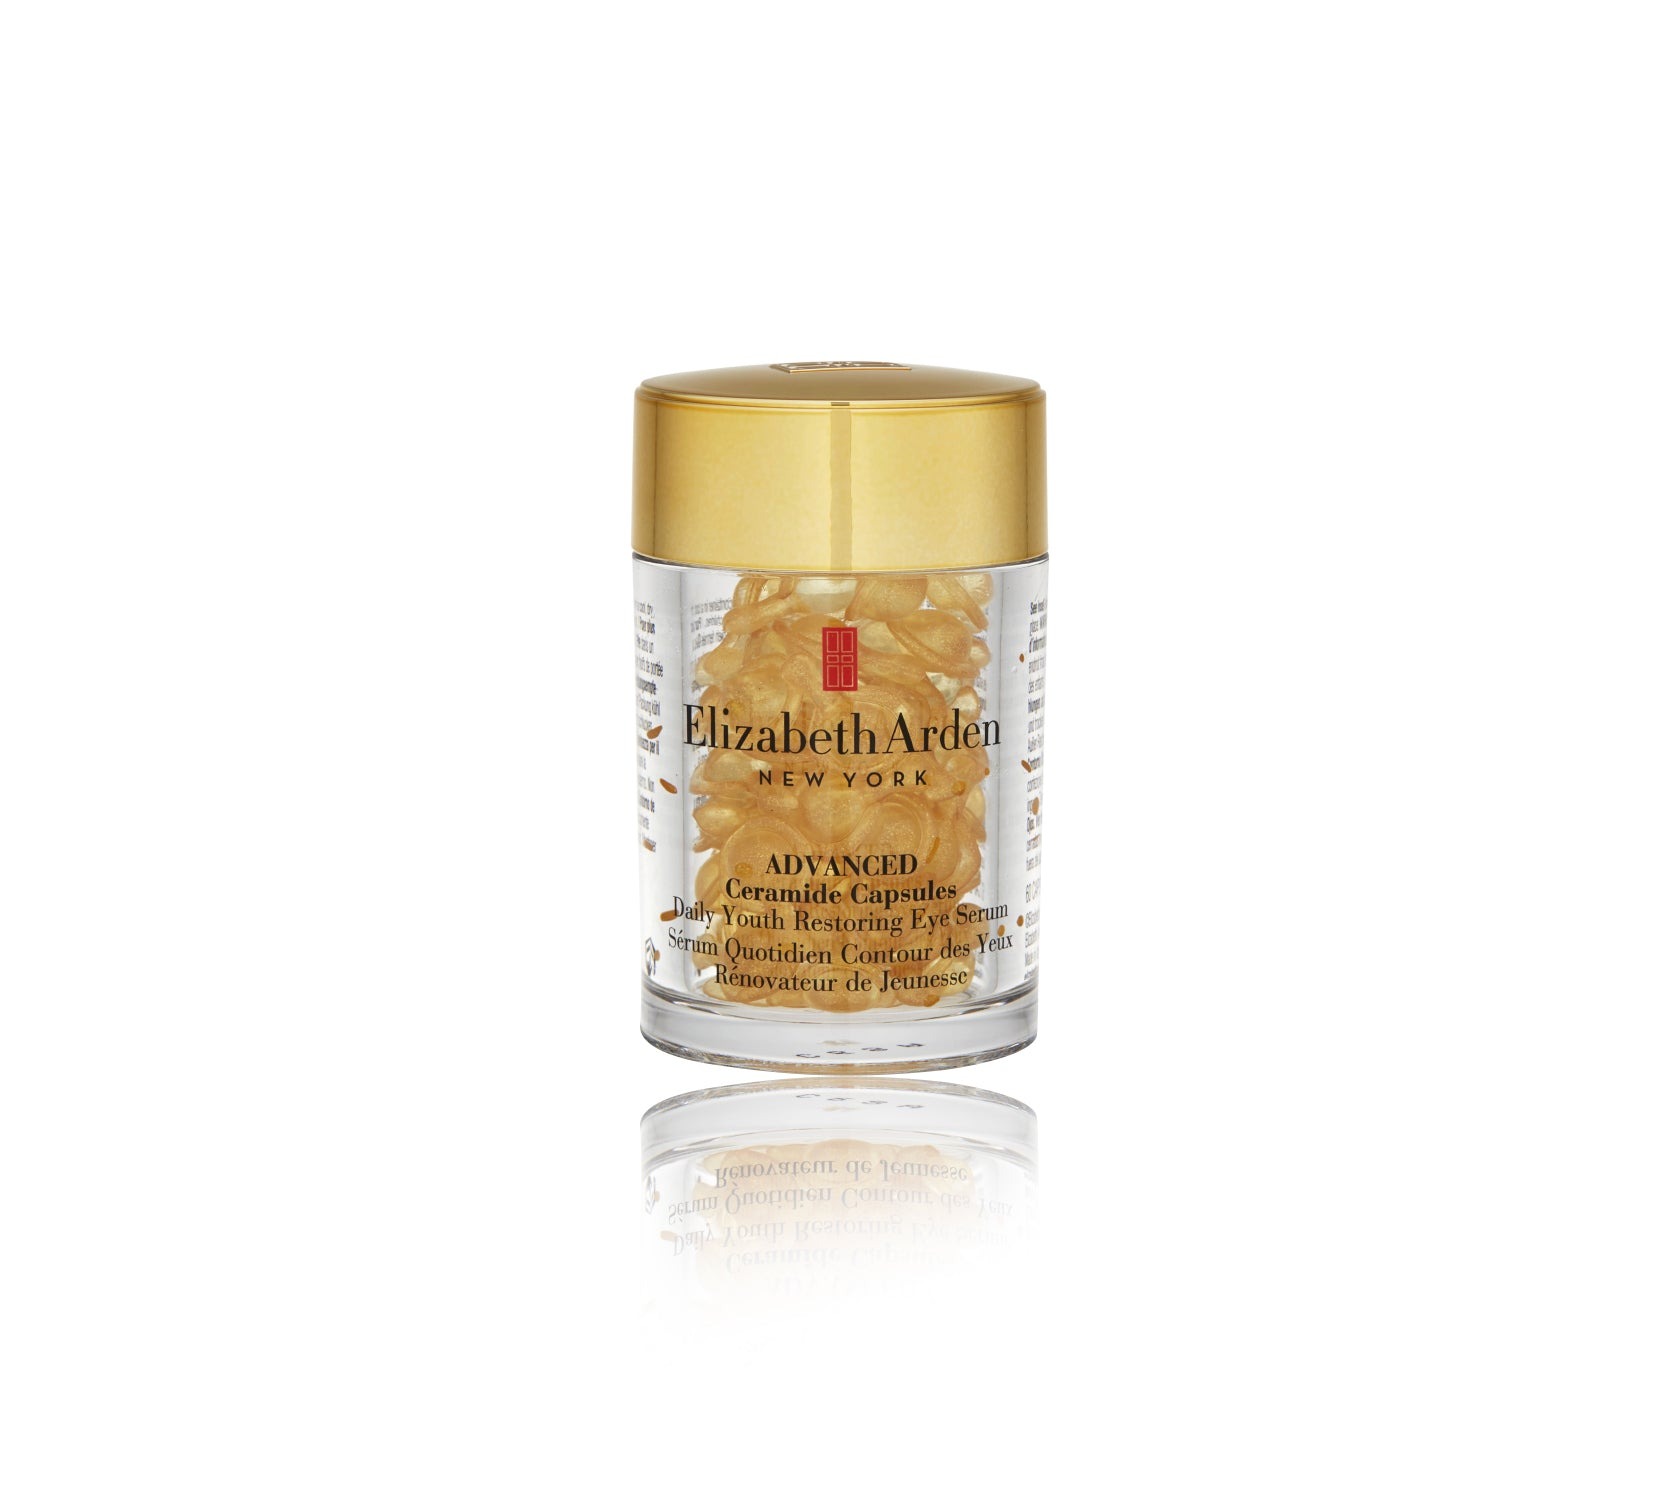 advanced-ceramide-capsules-daily-youth-restoring-eye-serum